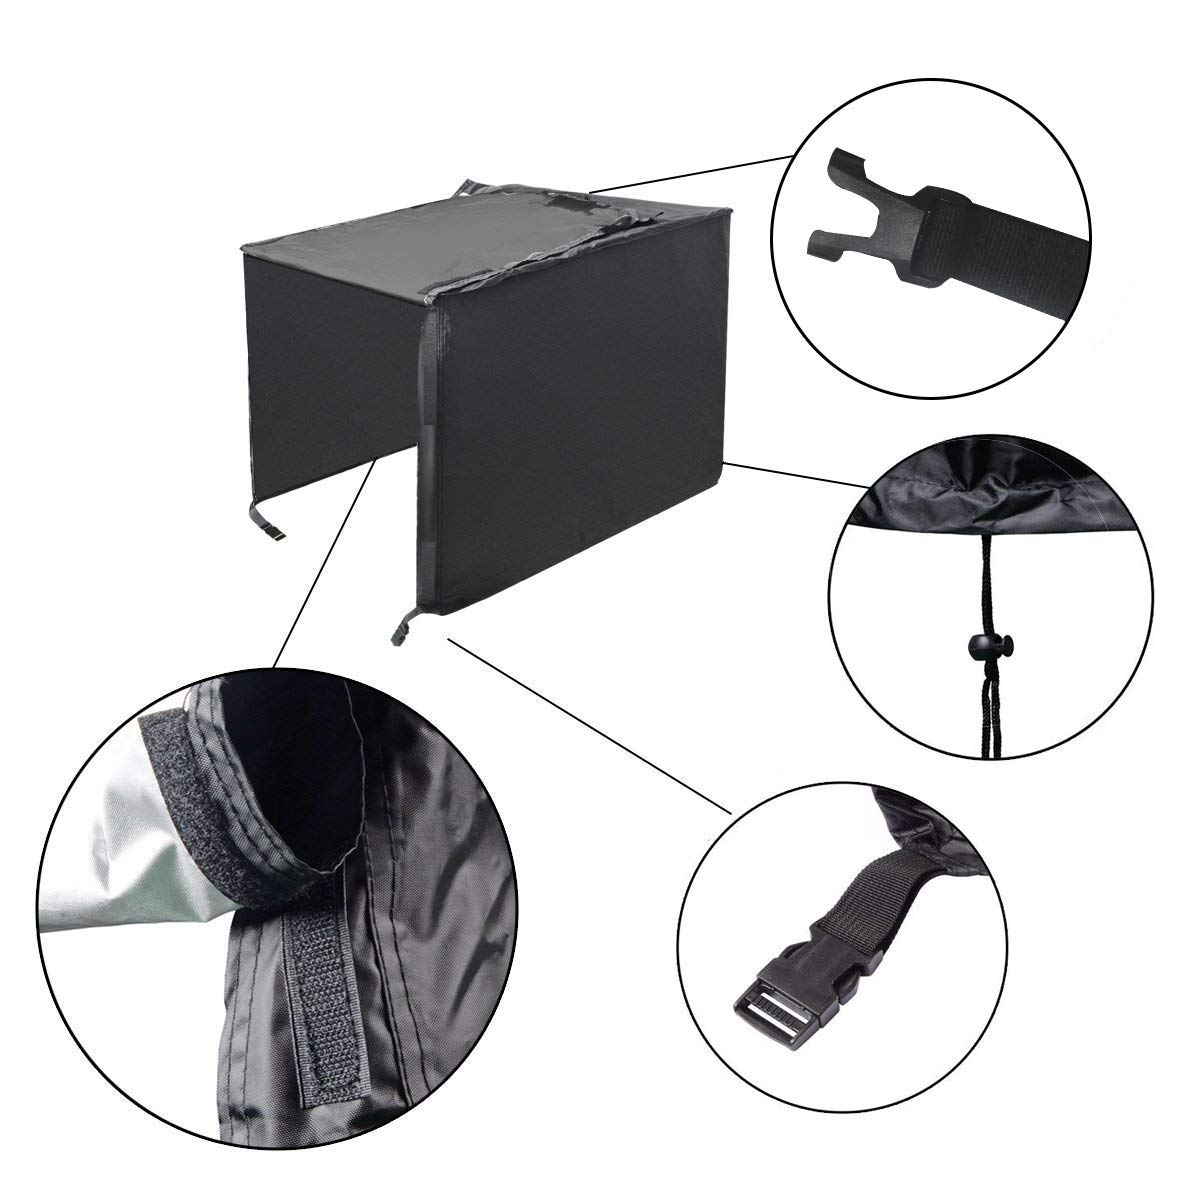 Himal Weather/UV Resistant Generator Cover 25 x 24 x 21 inch,for Universal Portable Generators 2200-5000 Watt, Black by Himal Outdoors (Image #3)